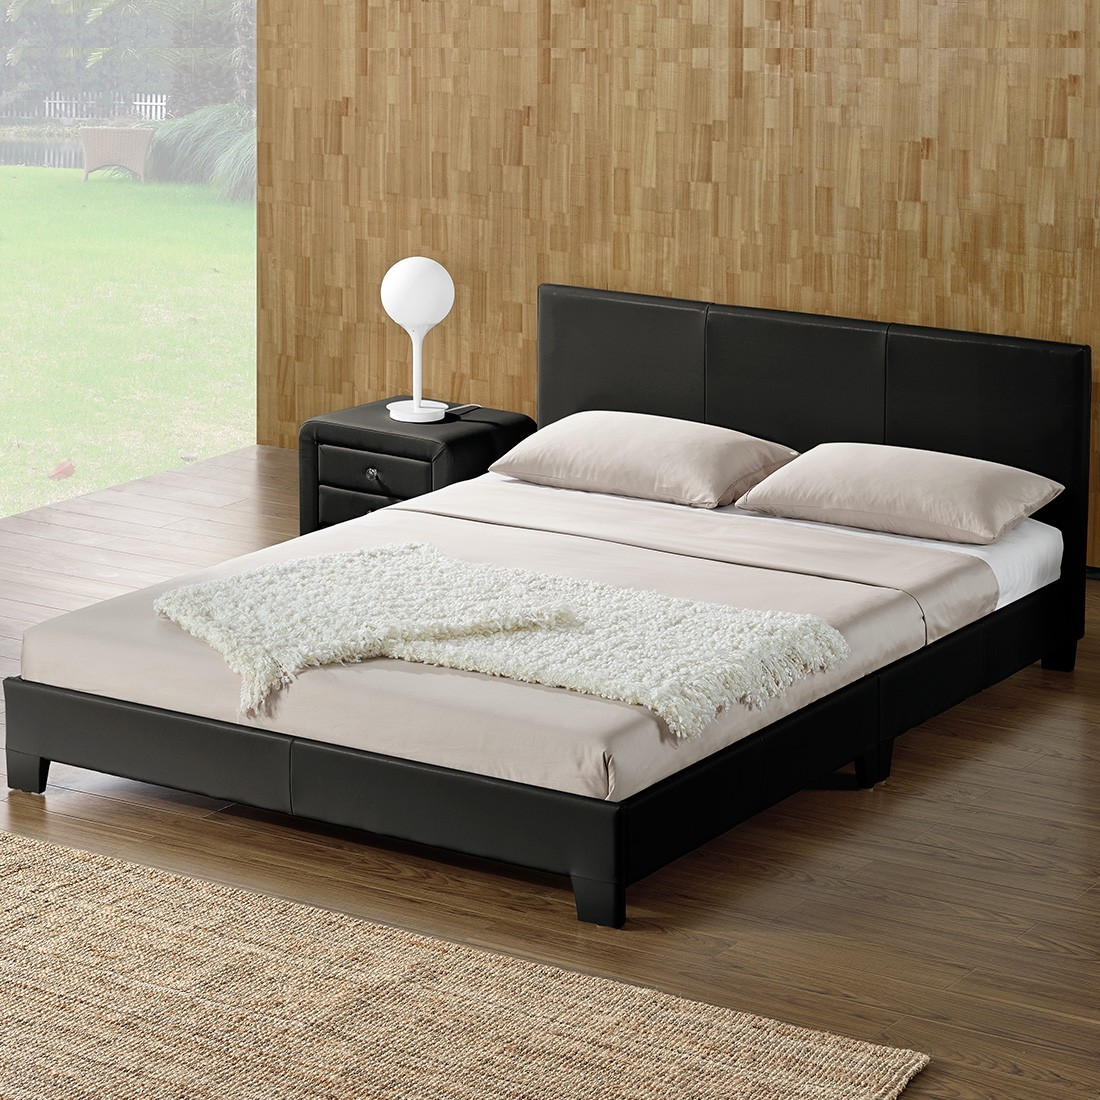 lit complet matelas et sommier simpli 160x200 noir. Black Bedroom Furniture Sets. Home Design Ideas